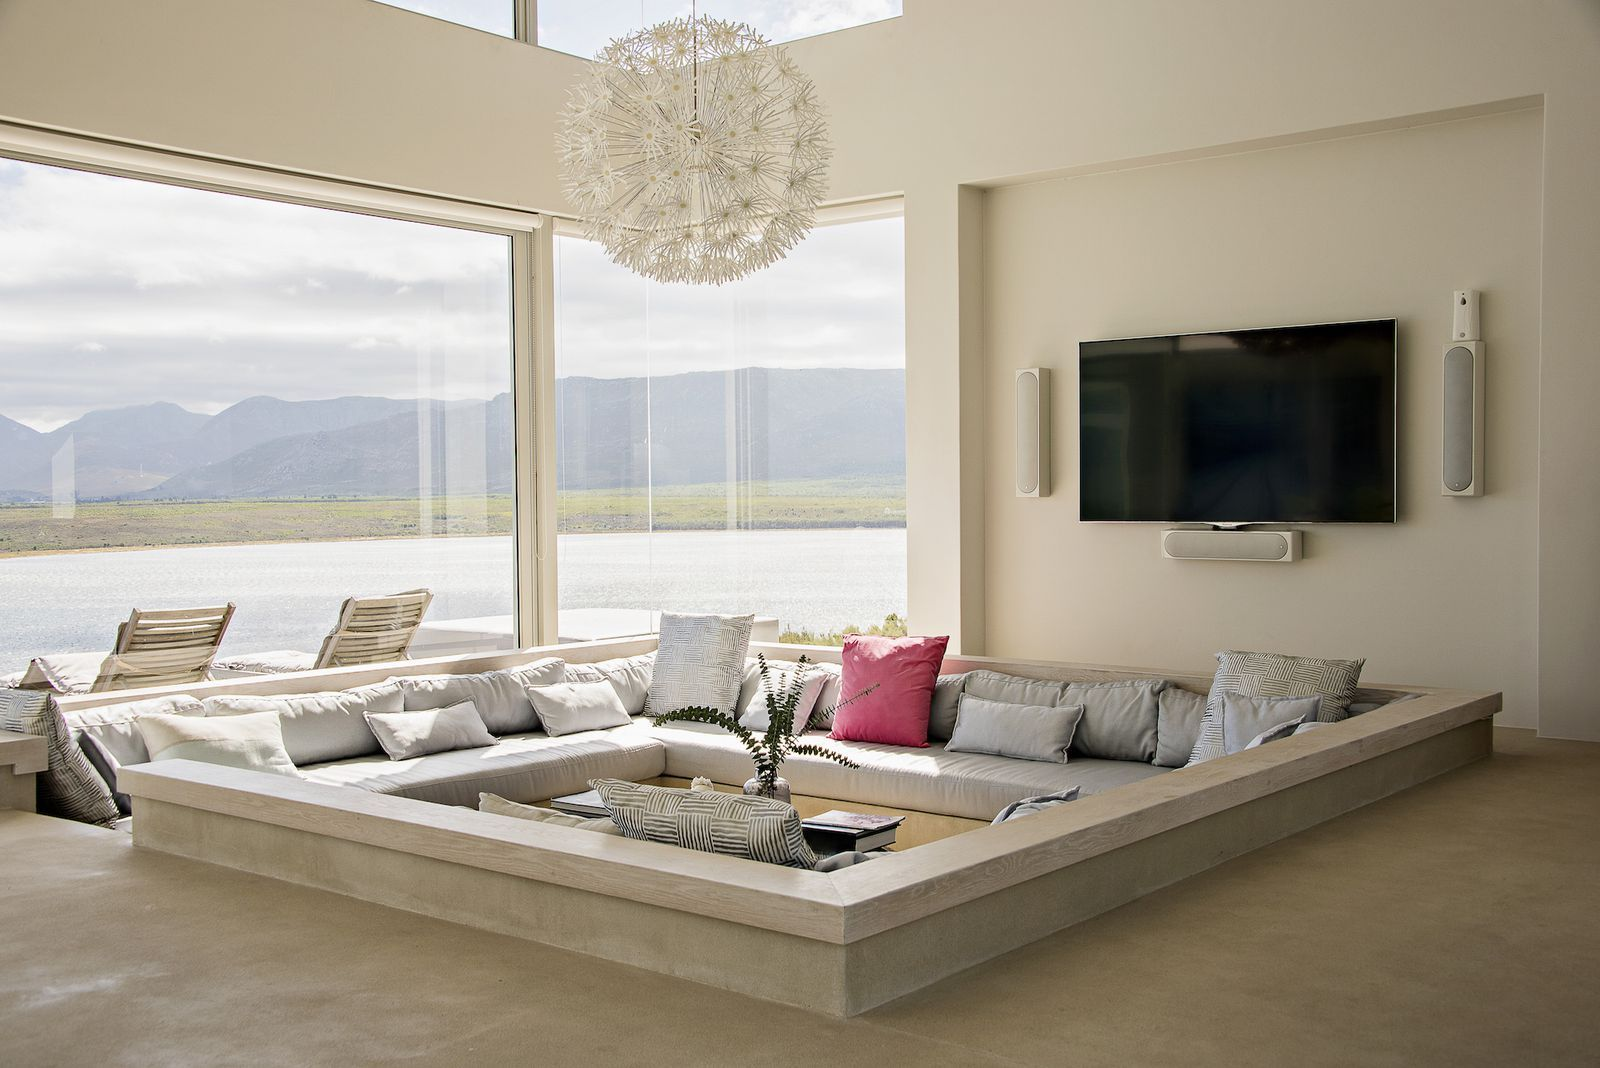 Living Room Vs Family Room Is There A Difference With Images